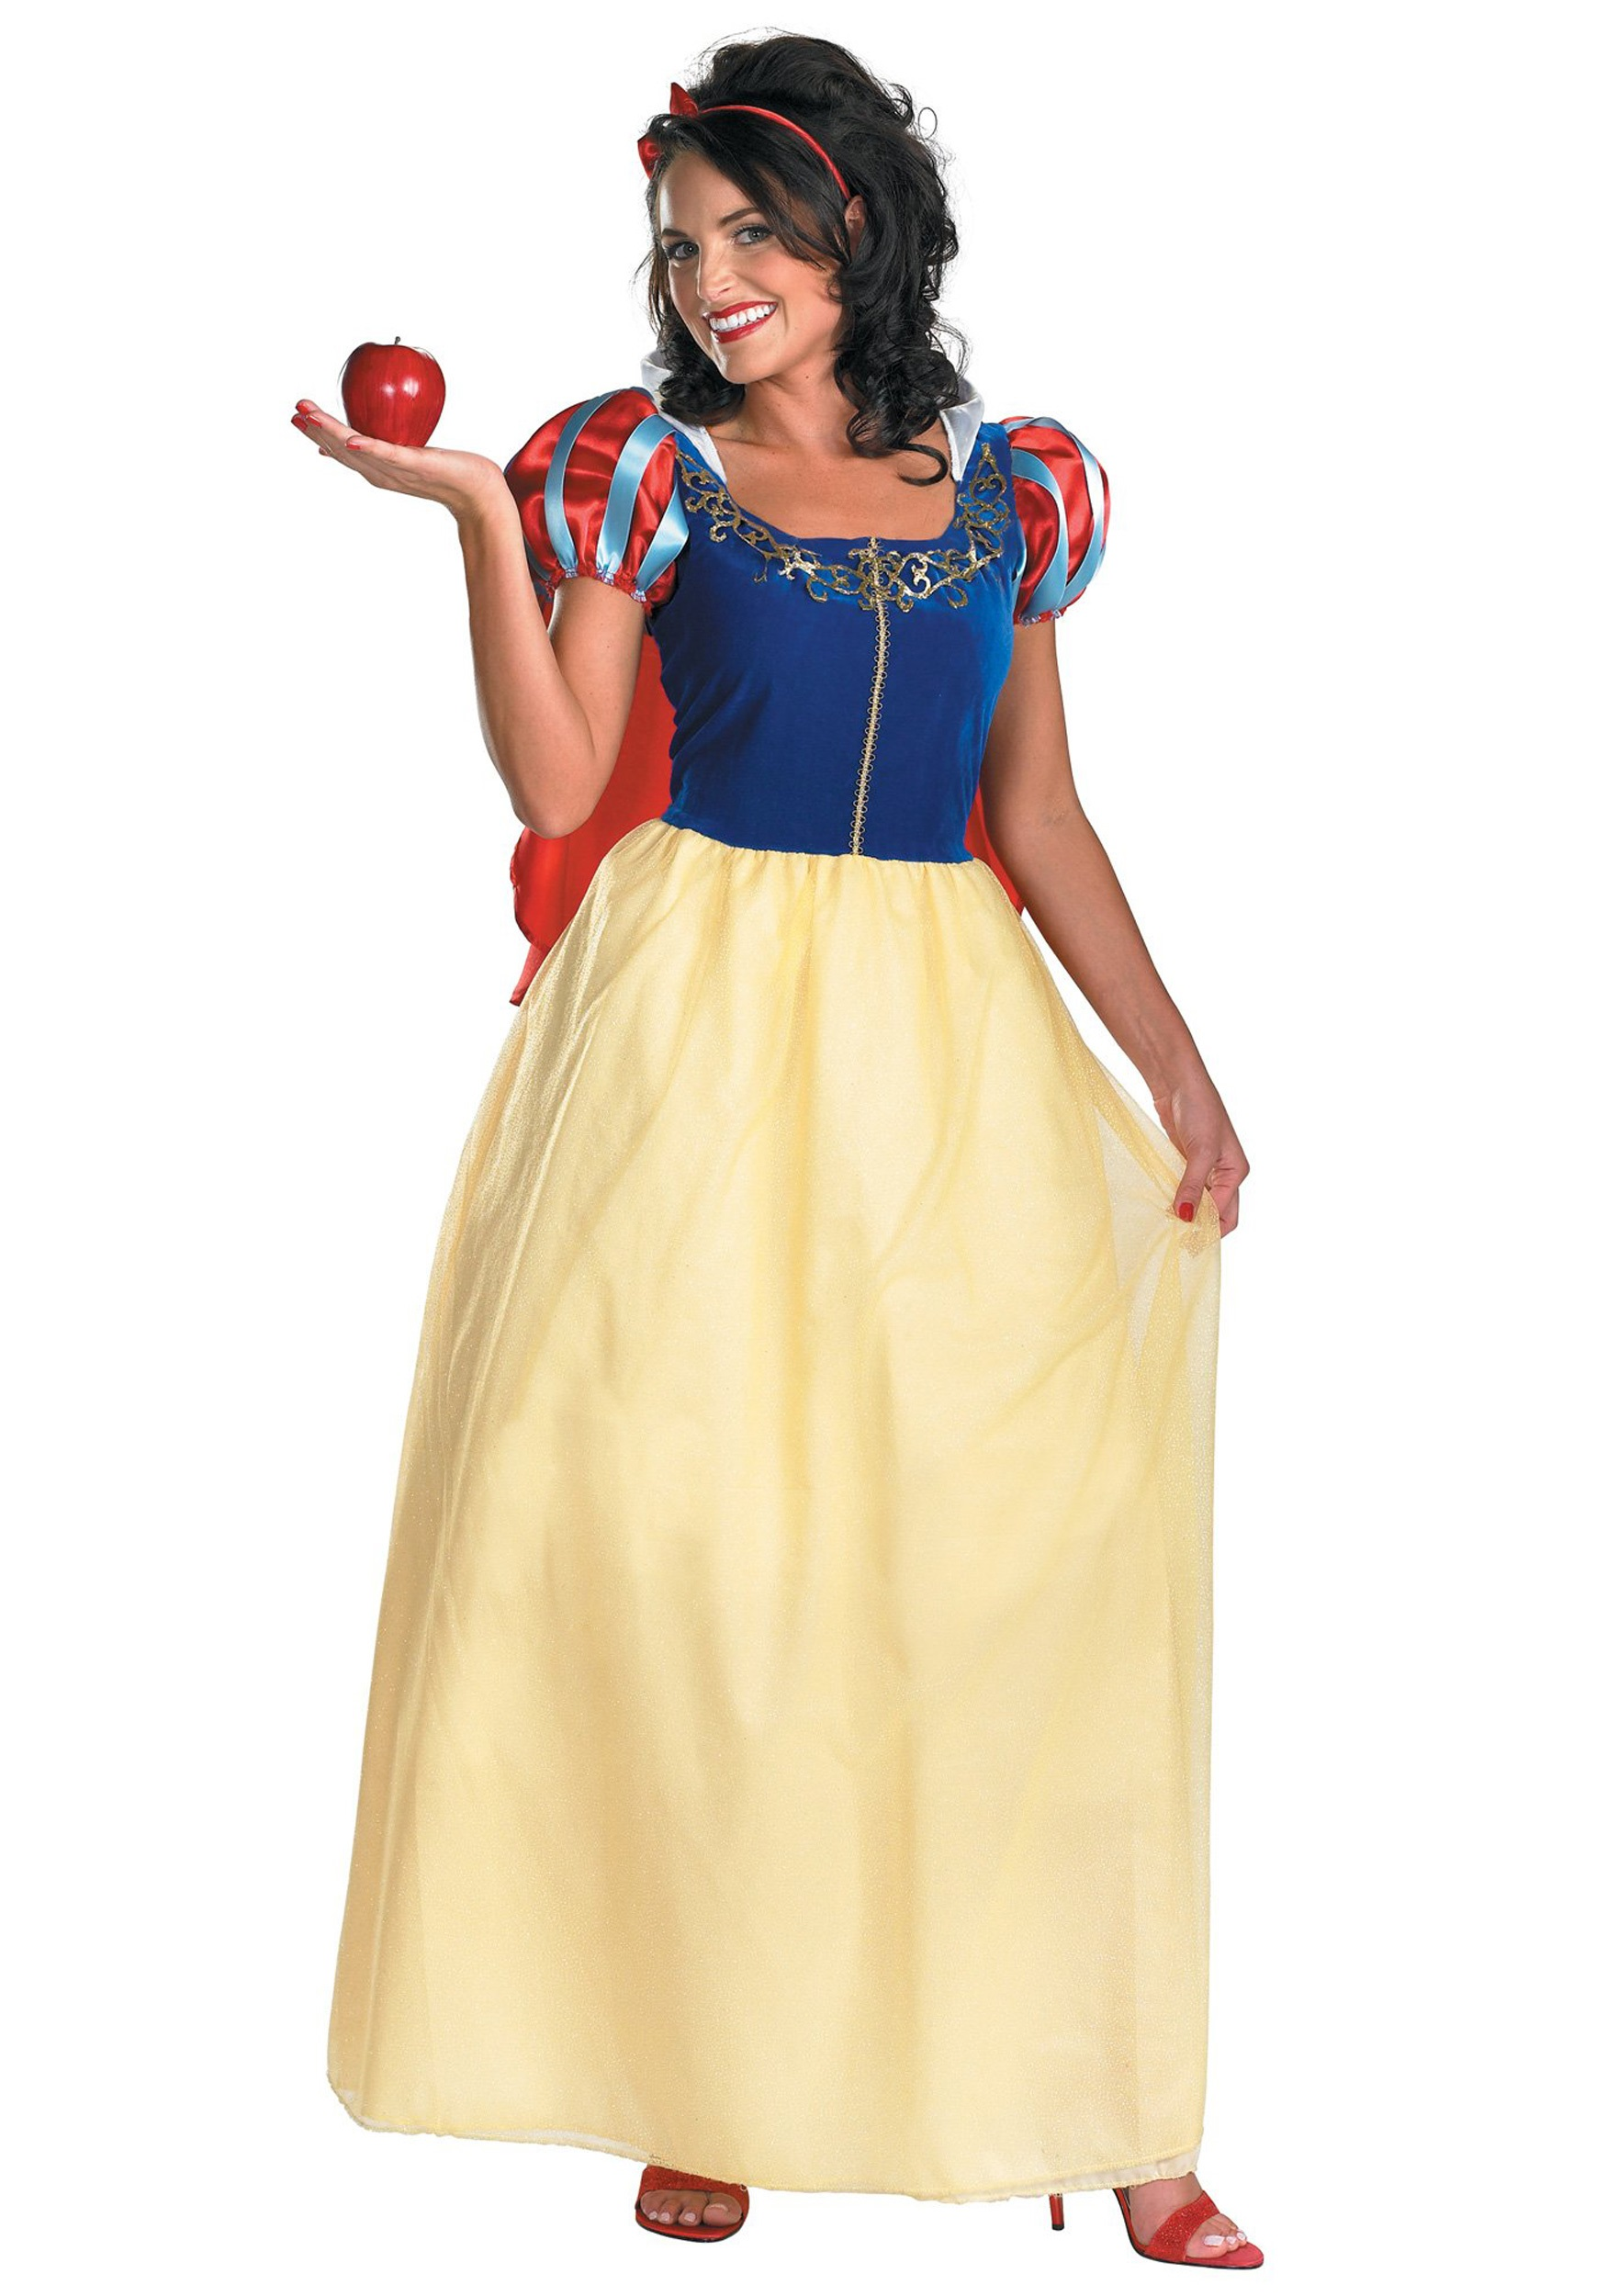 Bring your favorite Disney movie to life with this adult Snow White costume.